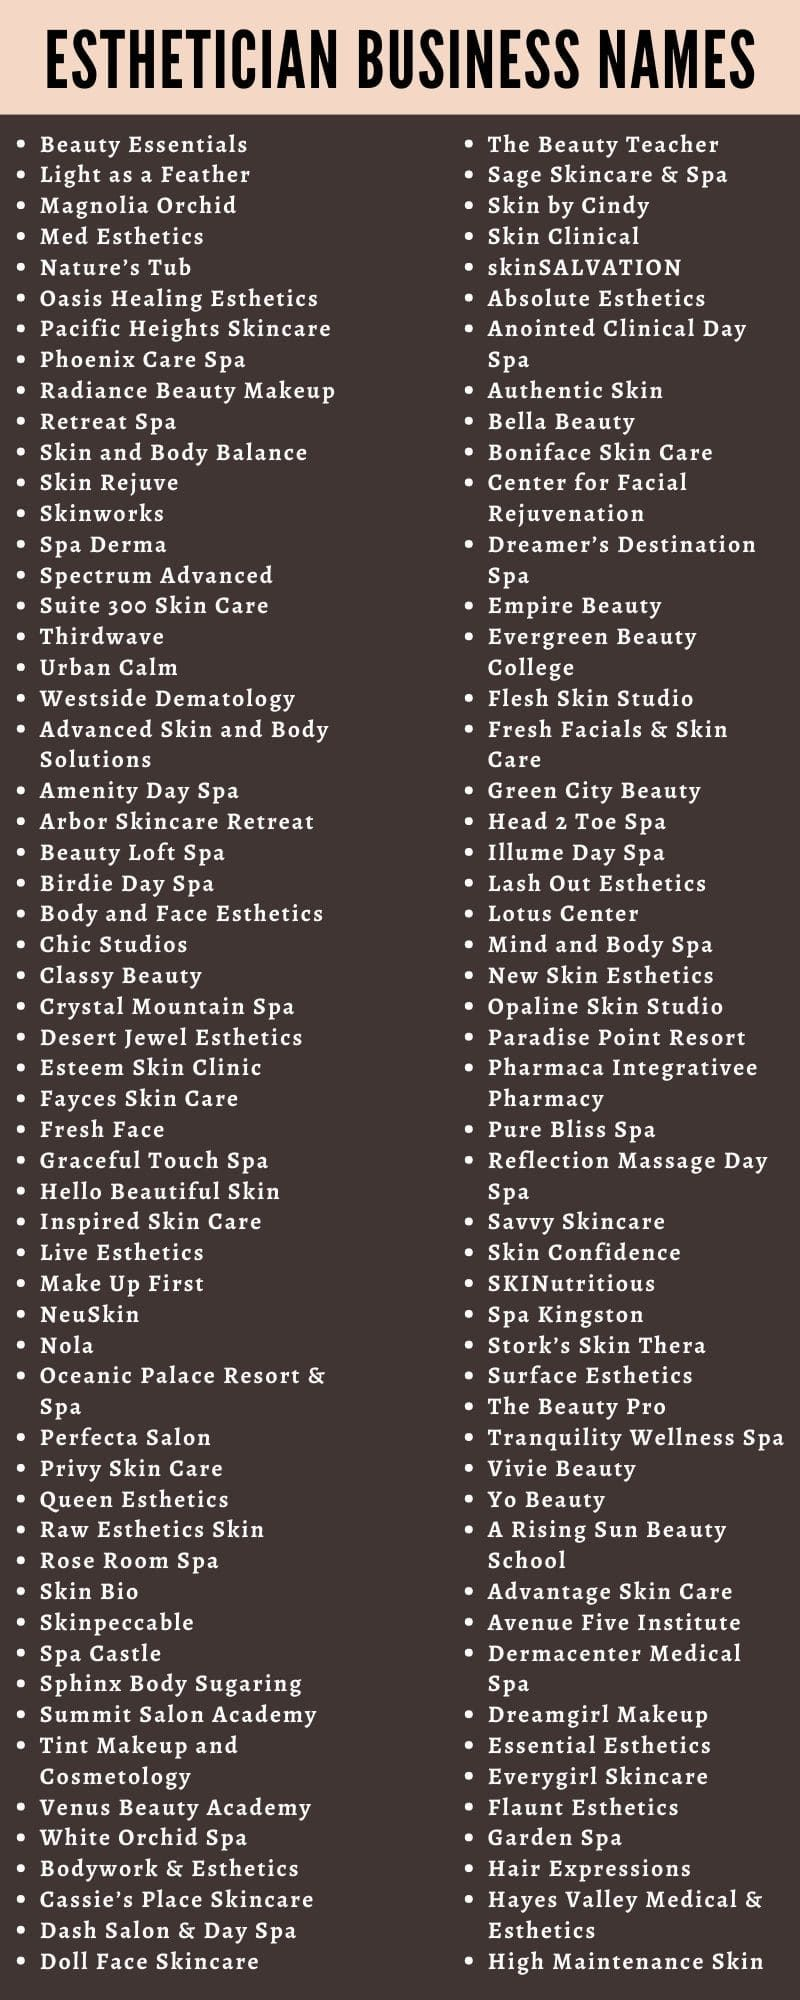 350 Catchy Esthetician Business Names Ideas and Suggestions